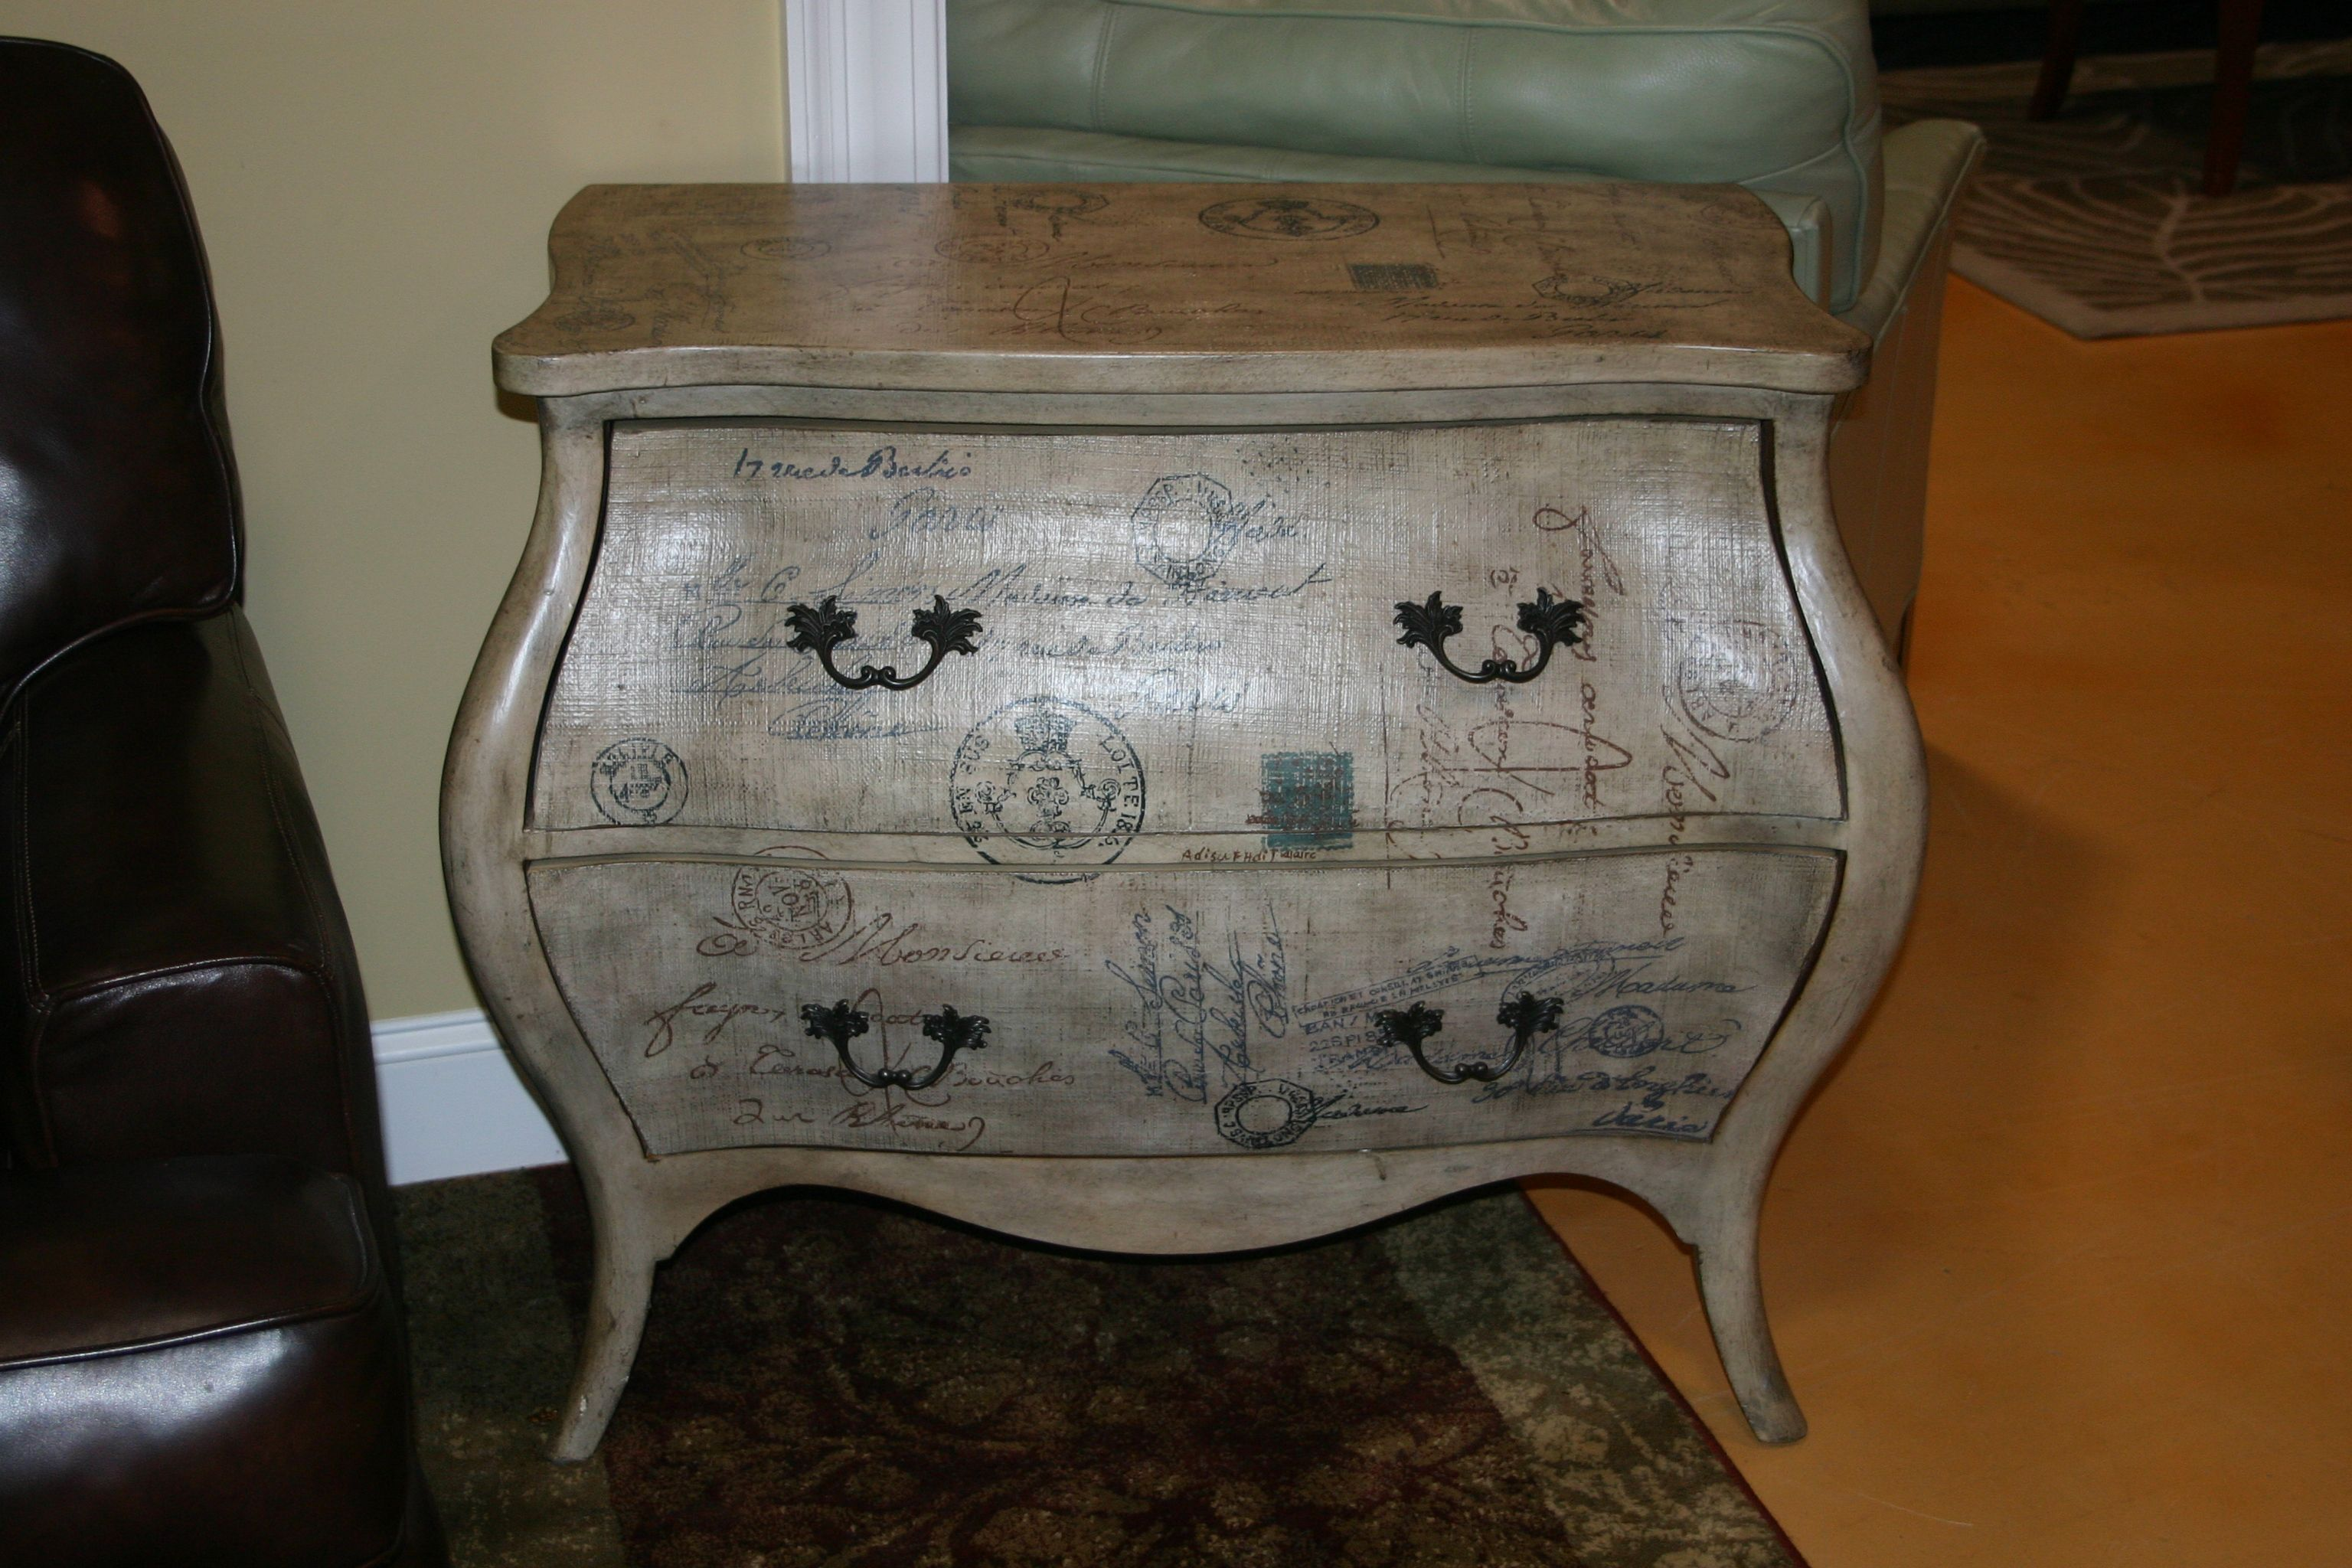 Visit My Rooms Furniture Gallery In Savannah GA For Trendy Accent Pieces U0026  Home Decor That